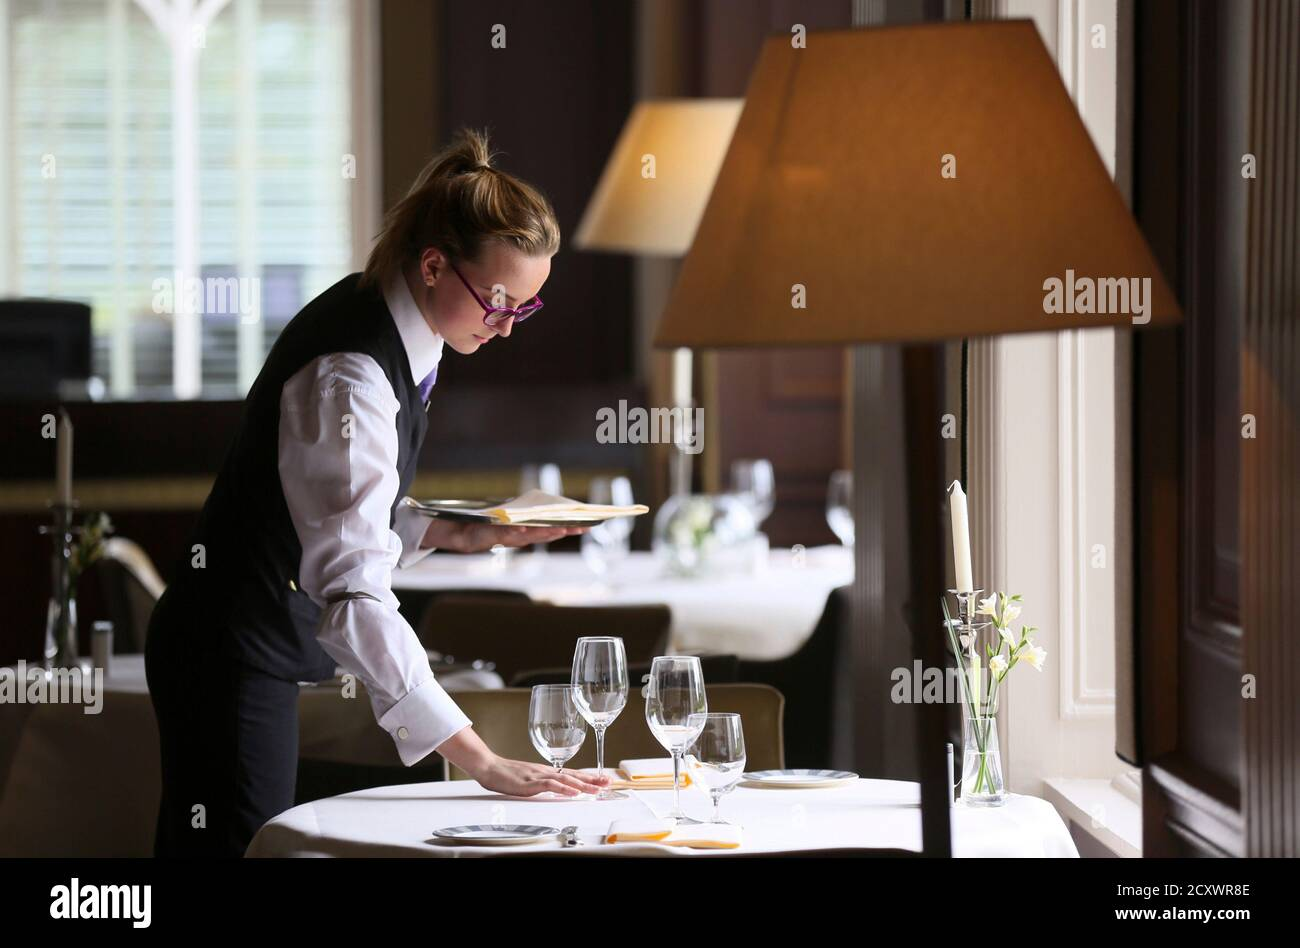 Commis de Rang Amy Connolly poses for a photograph as she sets the table in the Strathearn Restaurant at the Gleneagles Hotel in Perthshire, Scotland, August 19, 2014. The Ryder Cup will be played in Scotland for only the second time when the Gleneagles resort marks its 90th anniversary by hosting the eagerly awaited biennial event from September 26-28. Gleneagles was named the best golf resort in the world for the third year running at the 2014 ULTRA awards and follows Muirfield in 1973 as the only Scottish venues since the tournament began in 1927. Europe goes into the event as odds-on favou Stock Photo